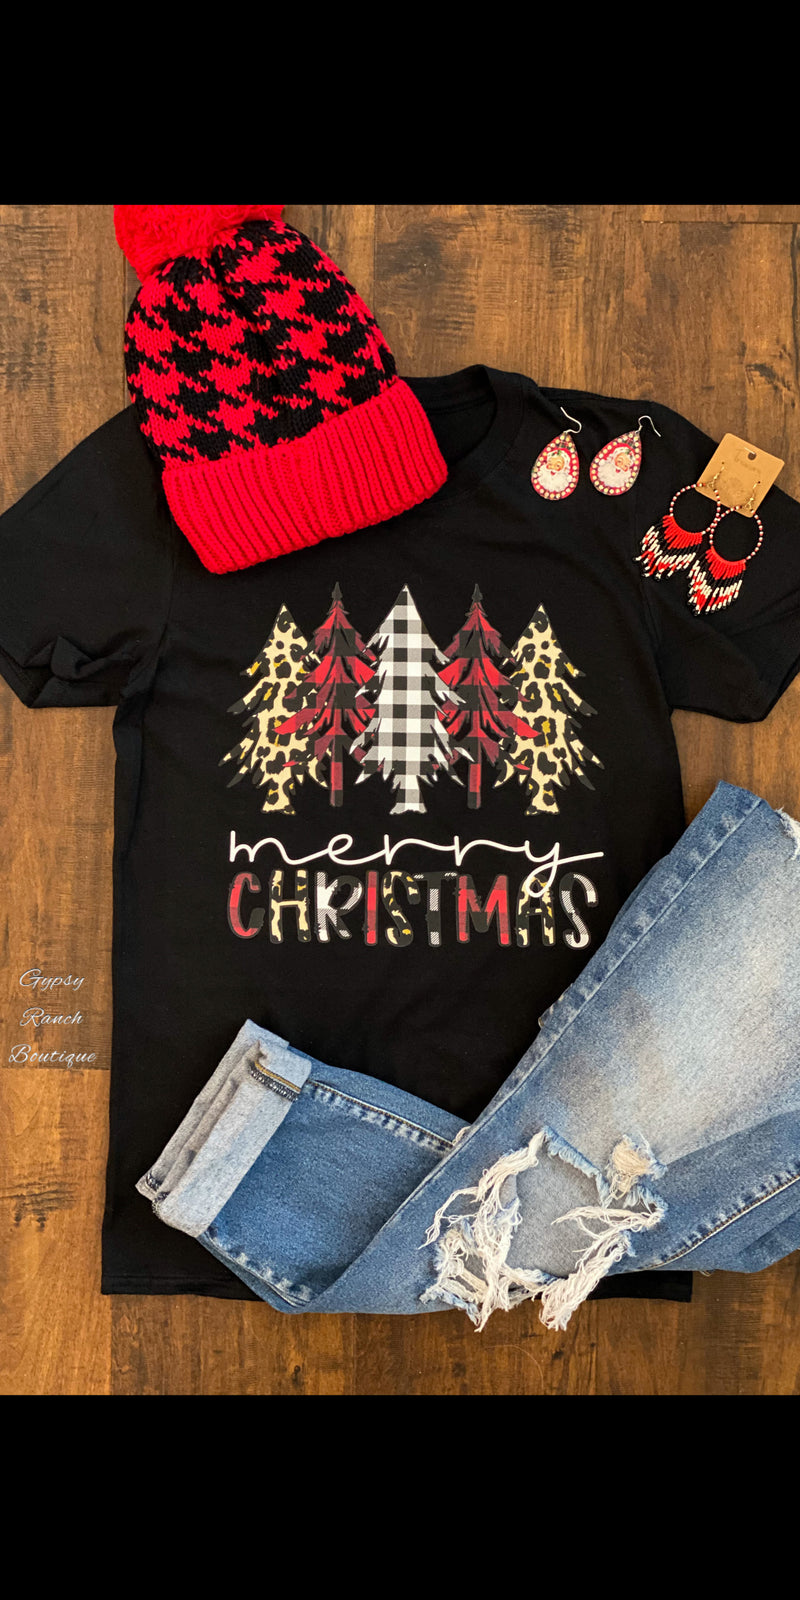 Buffalo Plaid & Leopard Merry Christmas Top - Also in Plus Size